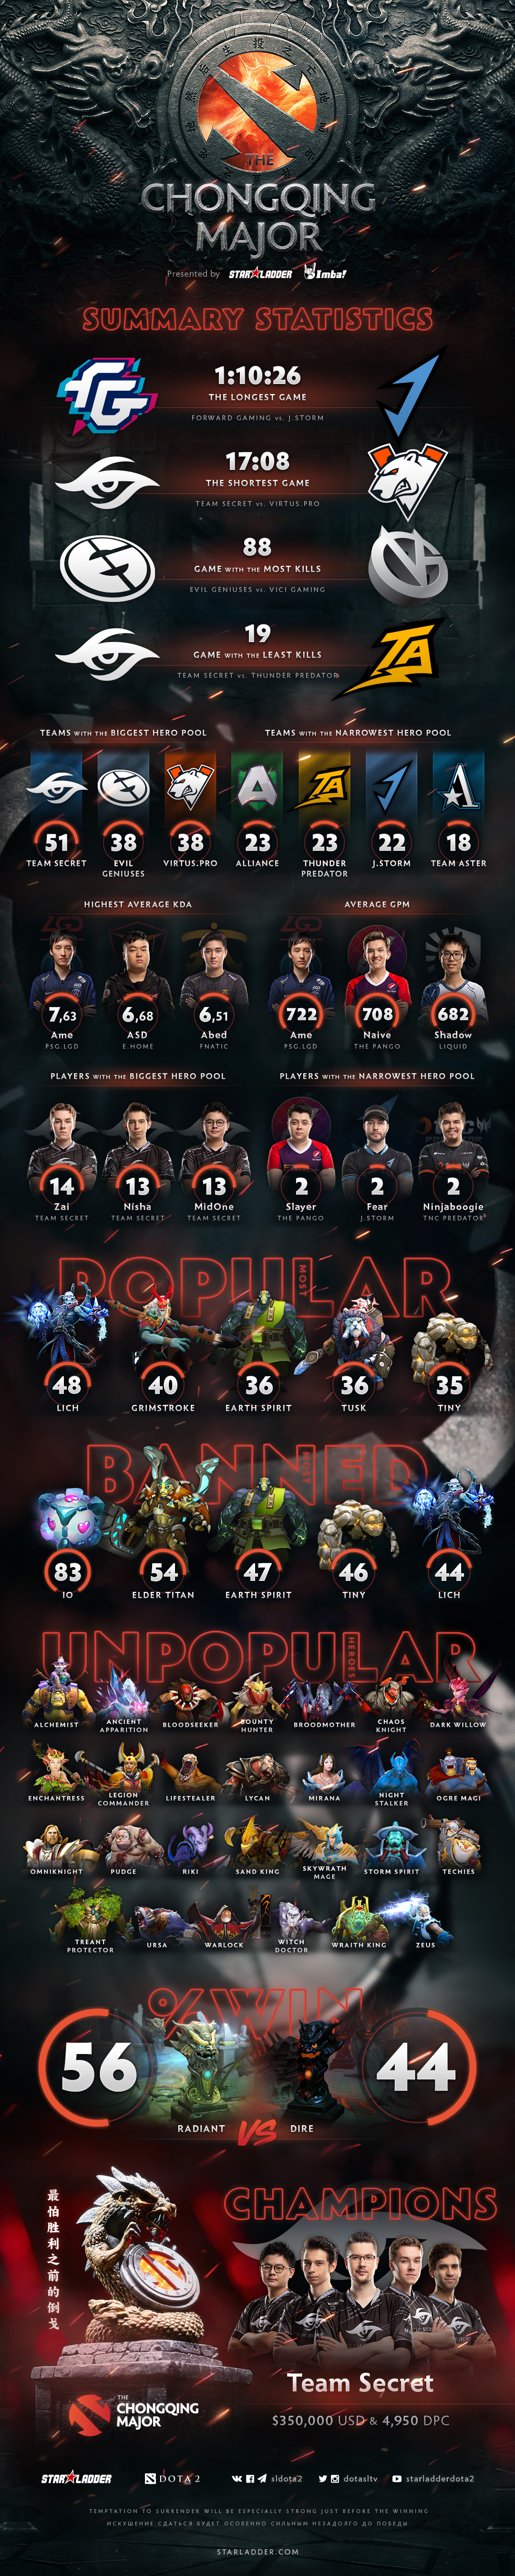 The Chongqing Major statistics